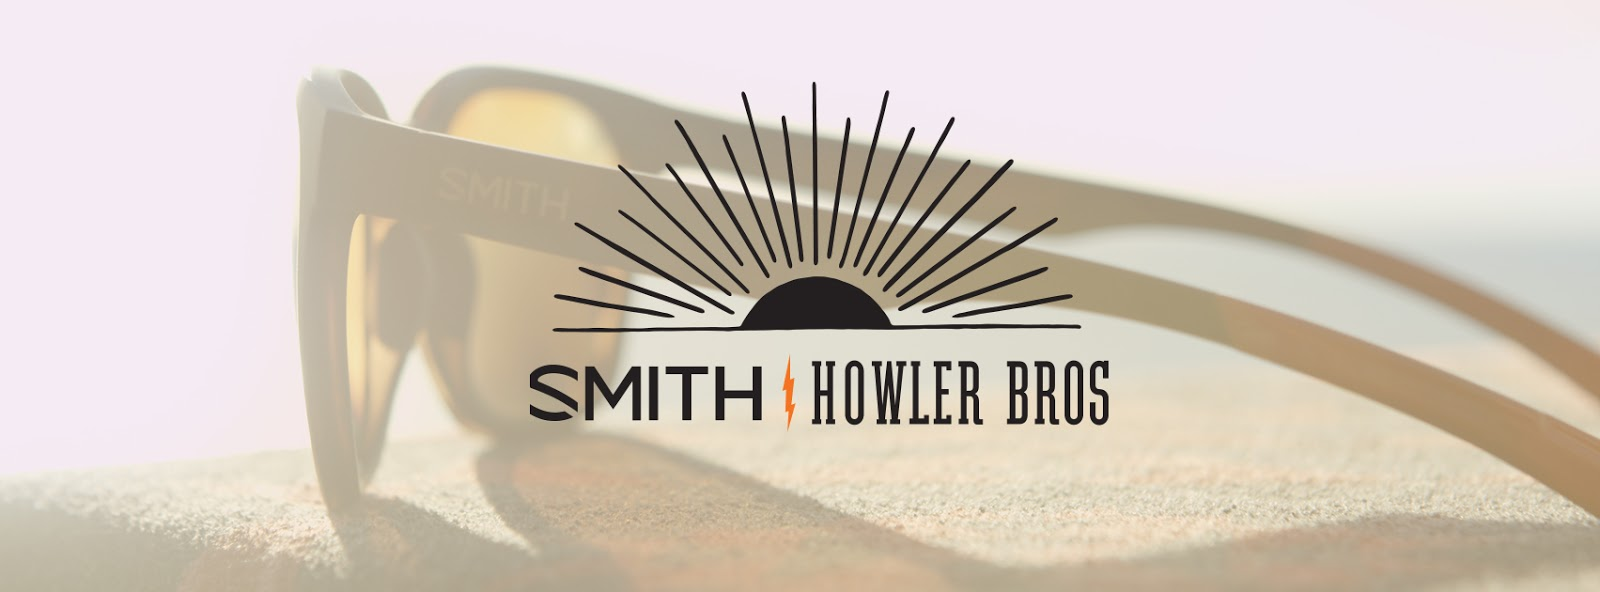 96be01e451f Smith and Howler Brothers have teamed up again for a stellar collection of  sunglasses and apparel and if it s anything like last year